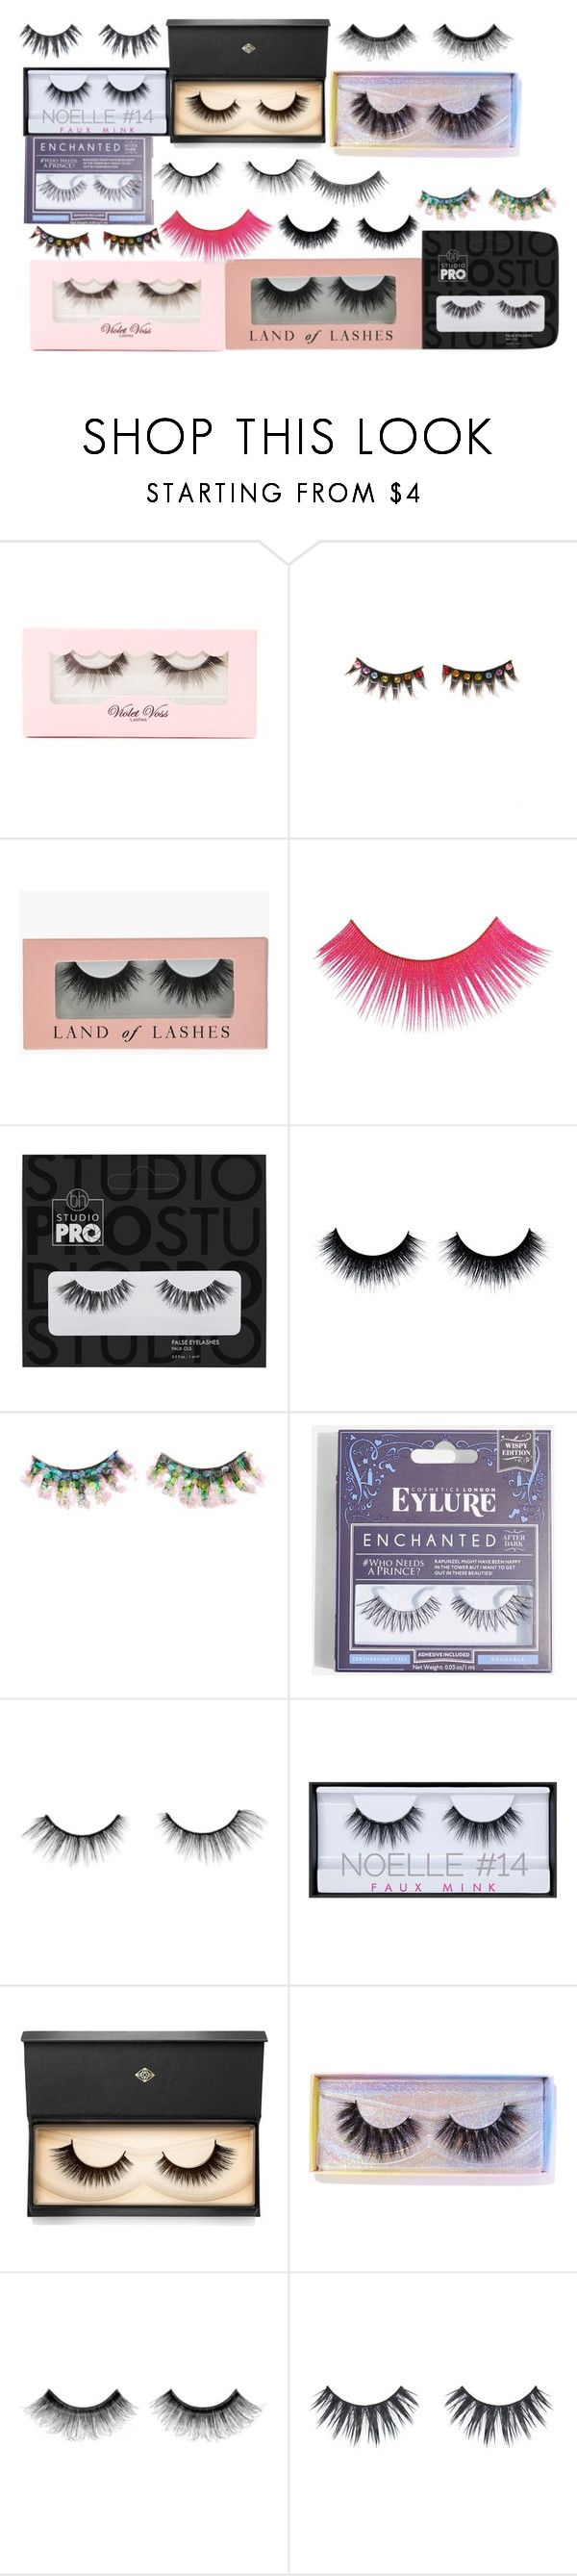 """""""random #1 eyelashes"""" by queenofquestions ❤ liked on Polyvore featuring beauty, Violet Voss, FromNicLove, Topshop, tarte, NYX, Huda Beauty, Lash Star Beauty, Featherella and Urban Decay"""